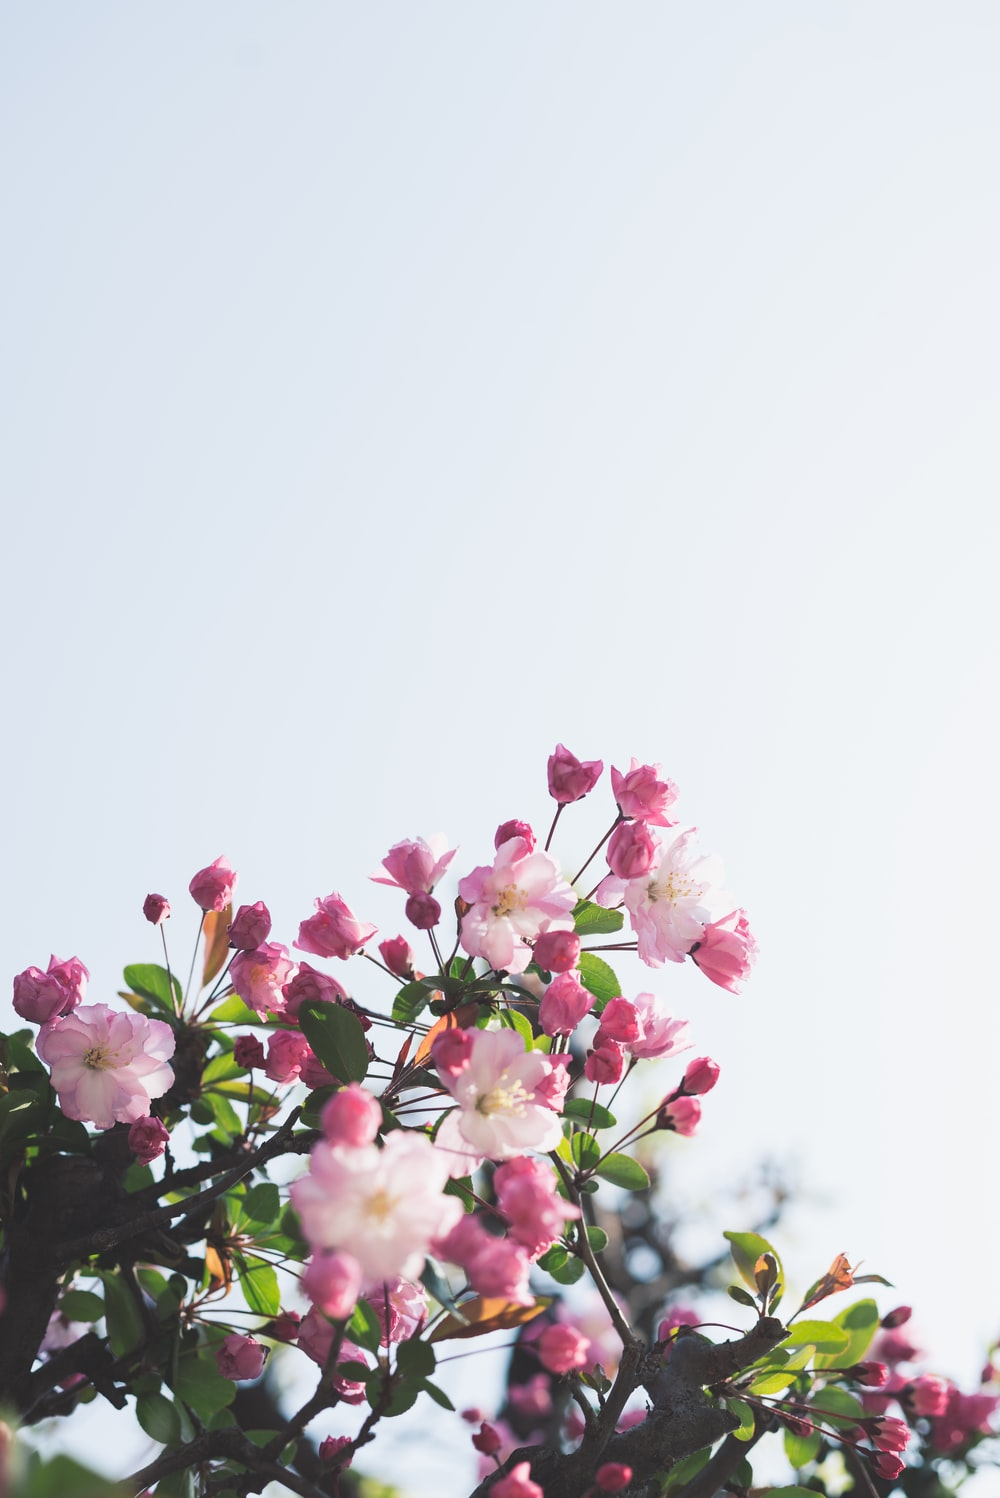 white-and-pink flowers